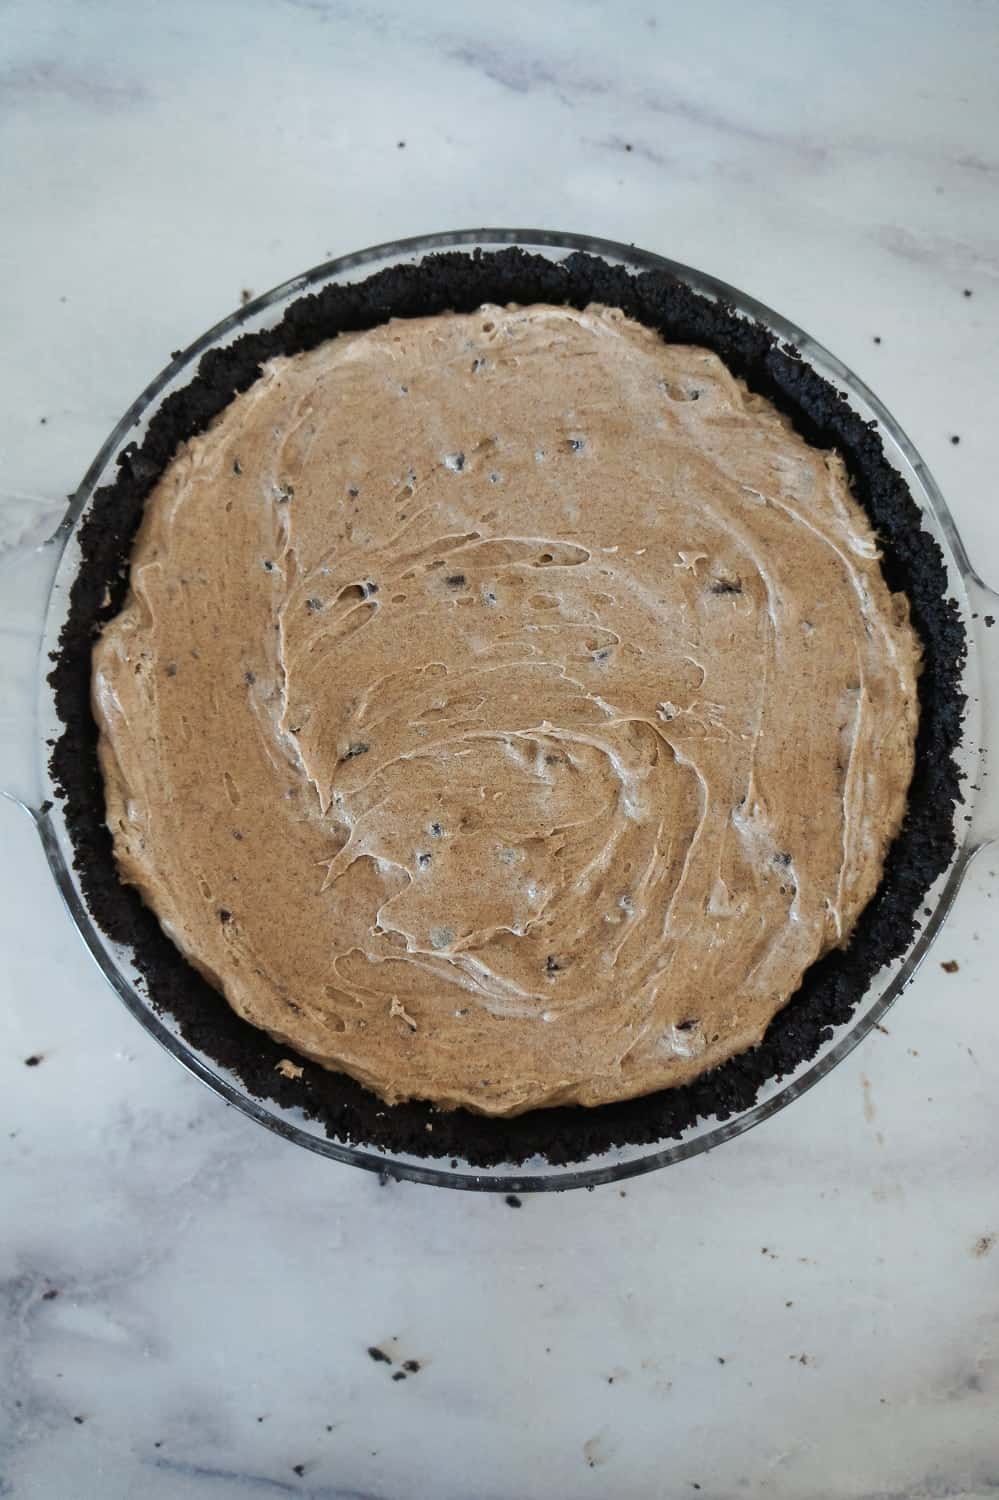 no bake Oreo pie filling in an Oreo crust